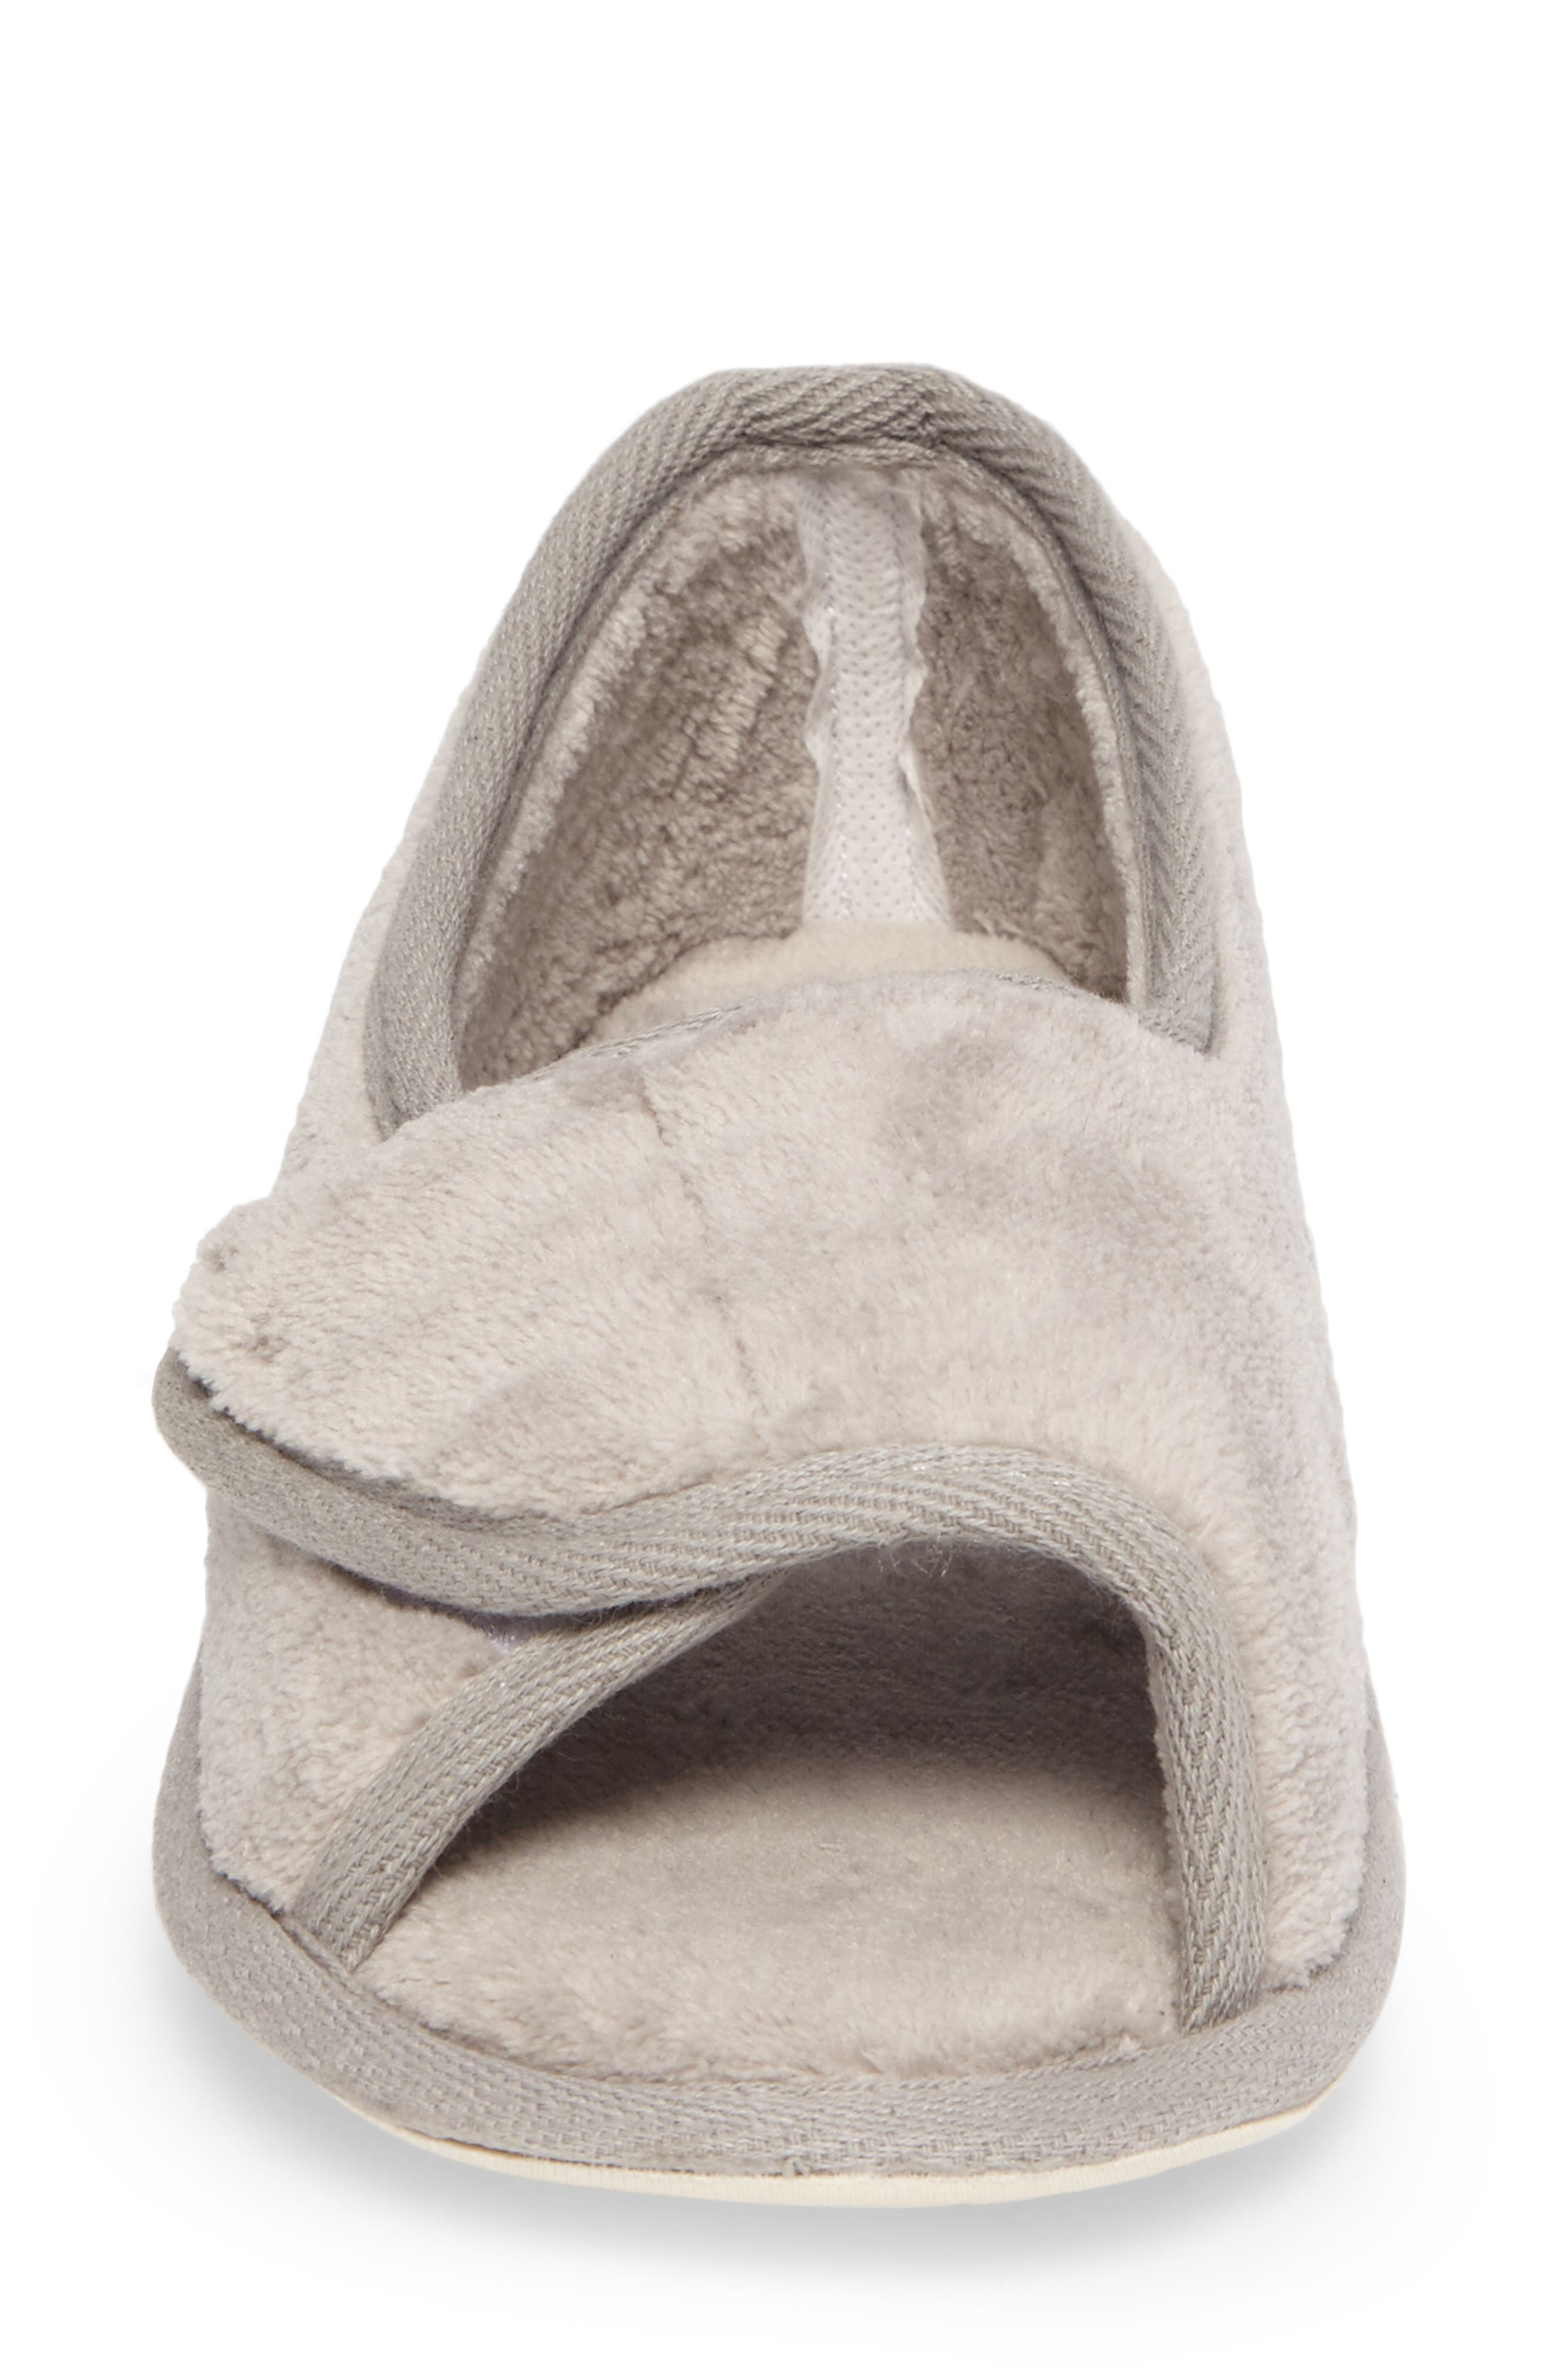 Tara II Slipper,                             Alternate thumbnail 4, color,                             GRAY FABRIC